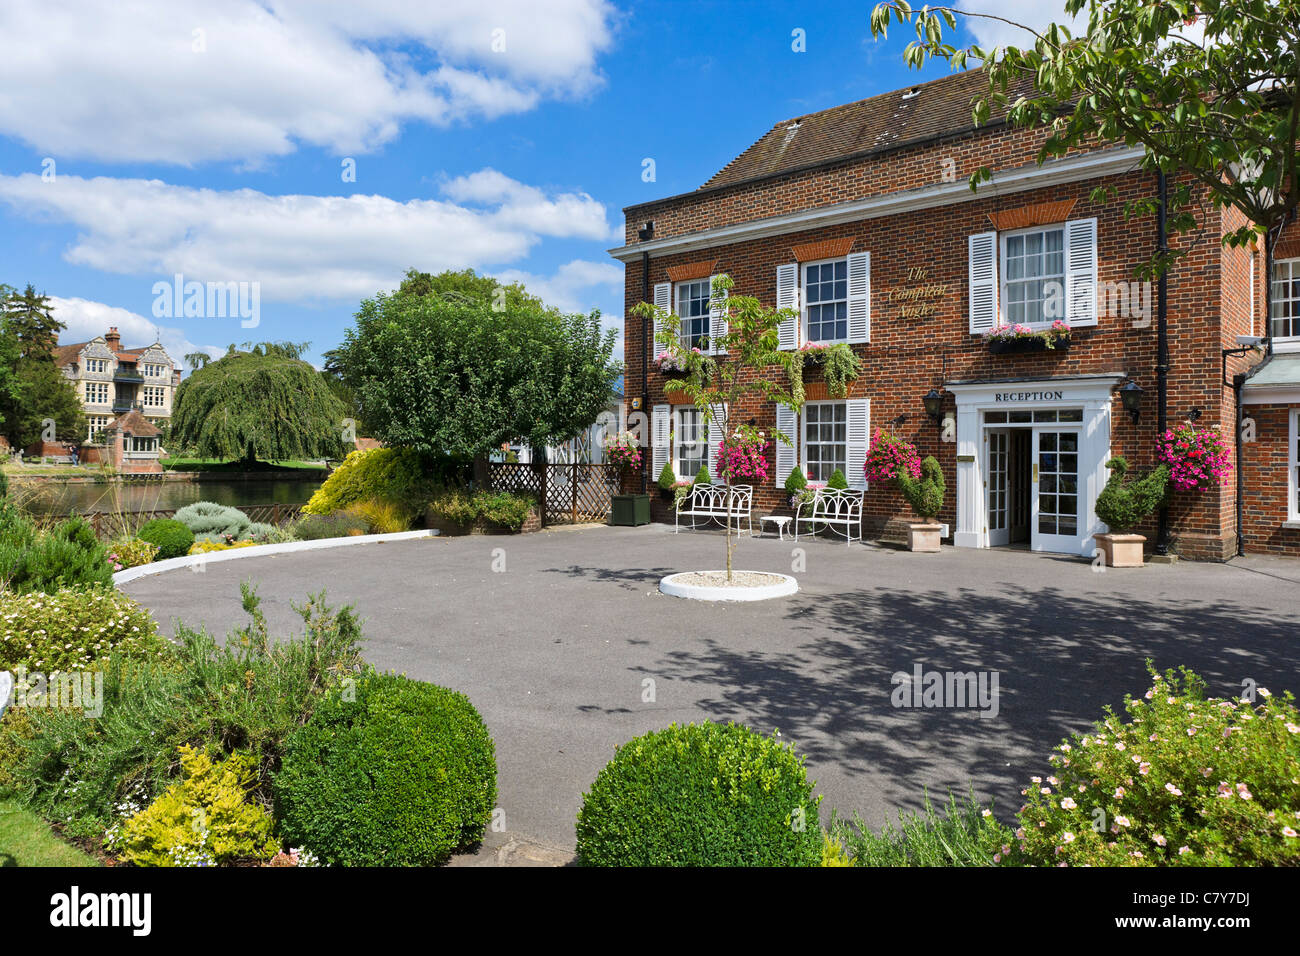 The Compleat Angler Hotel and Restaurant on the River Thames in Marlow, Buckinghamshire, England, UK Stock Photo